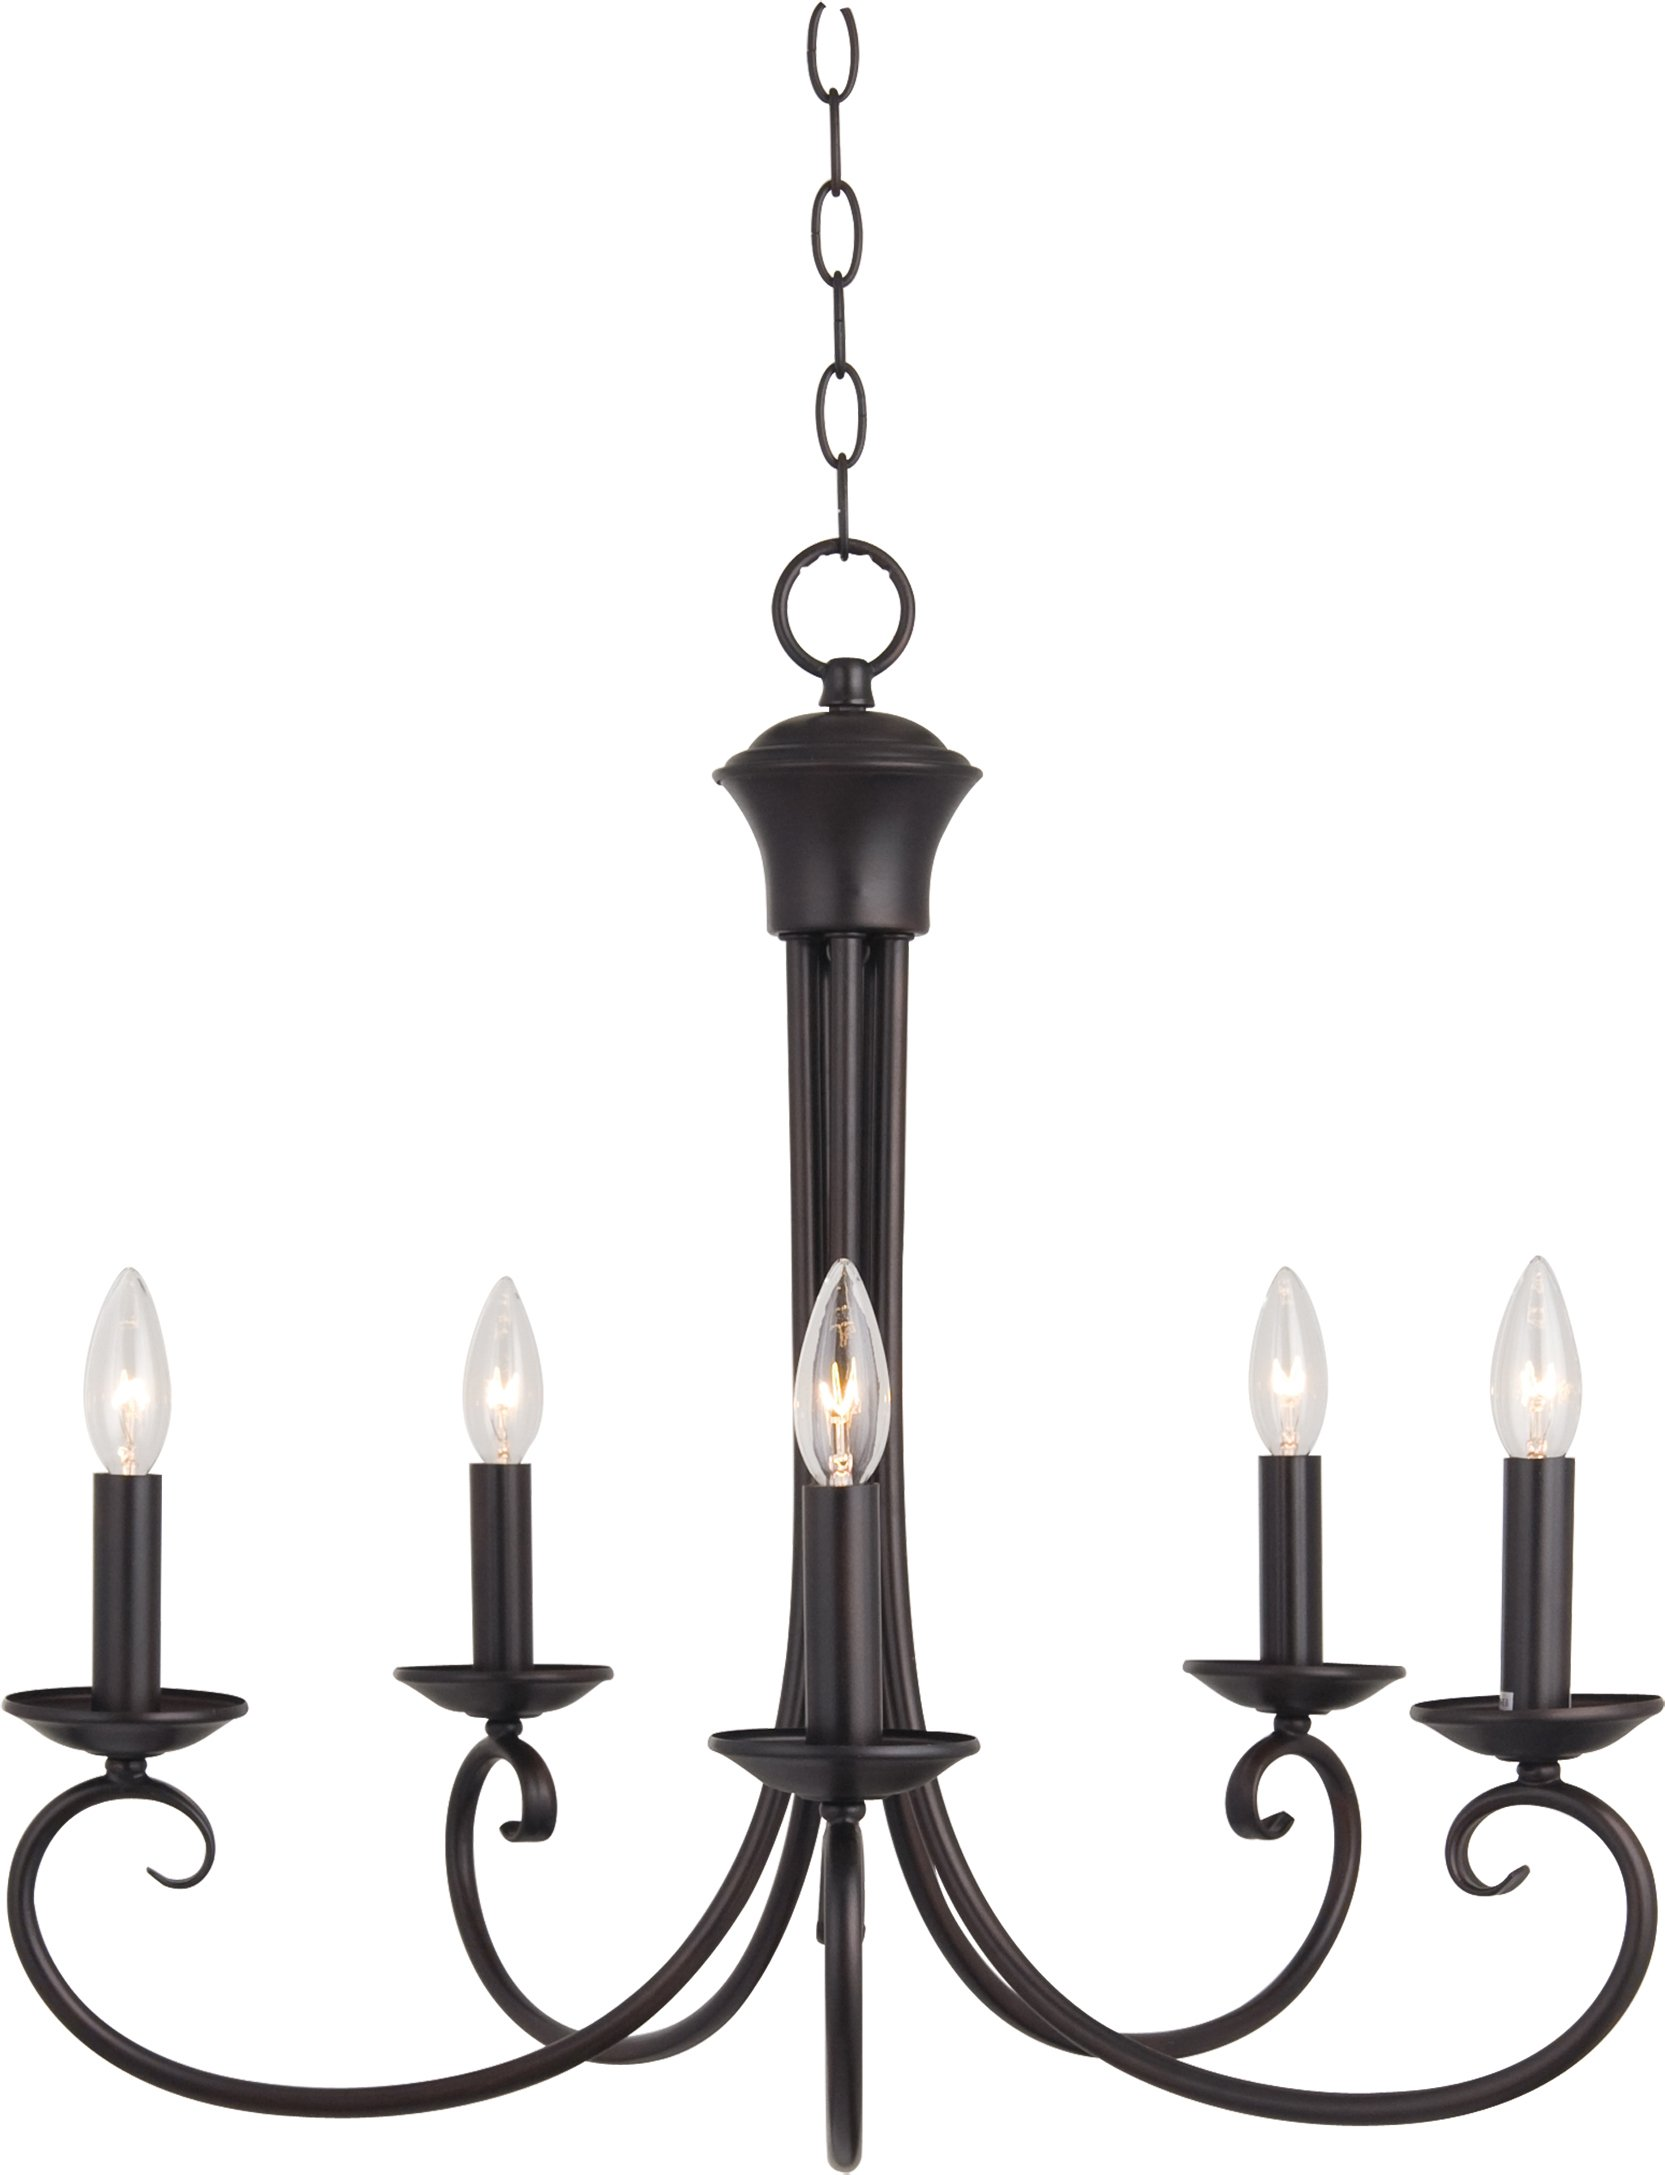 Maxim 70005OI Loft 5-Light Chandelier, Oil Rubbed Bronze Finish, Glass, CA Incandescent Incandescent Bulb , 60W Max., Wet Safety Rating, Standard Dimmable, Glass Shade Material, 672 Rated Lumens